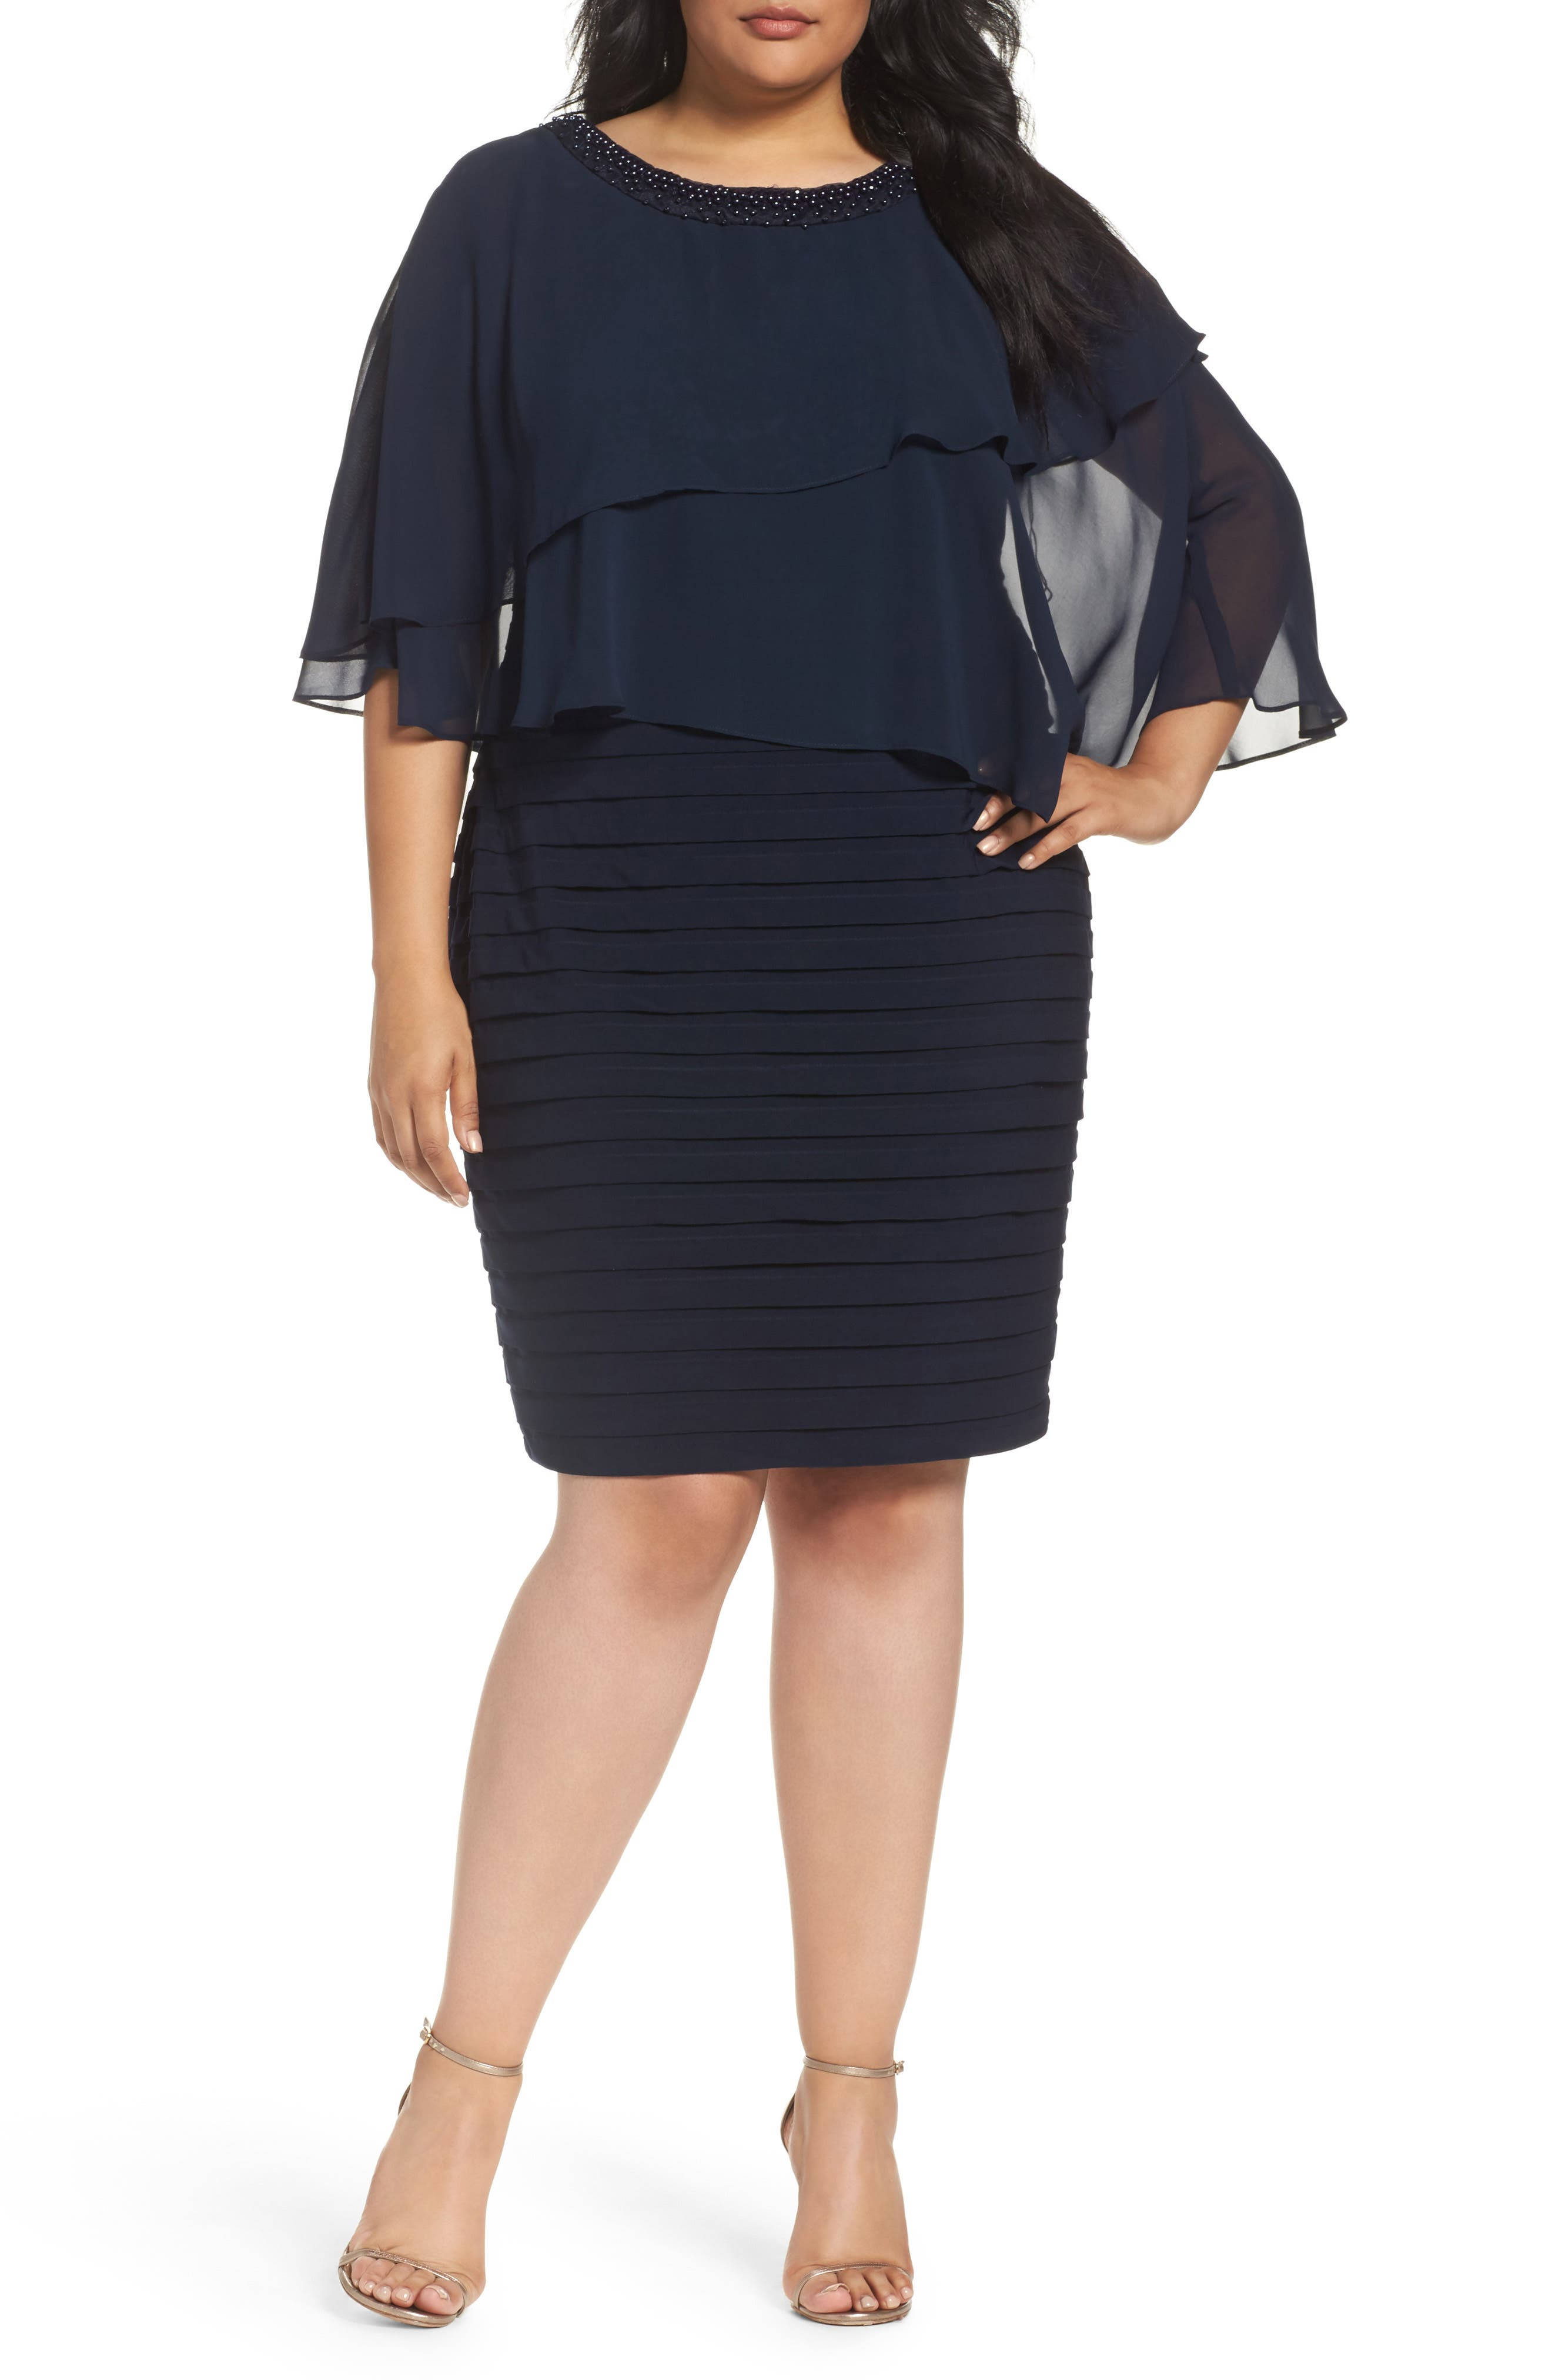 Adrianna Papell Embellished Capelet Sheath Dress (Plus Size)